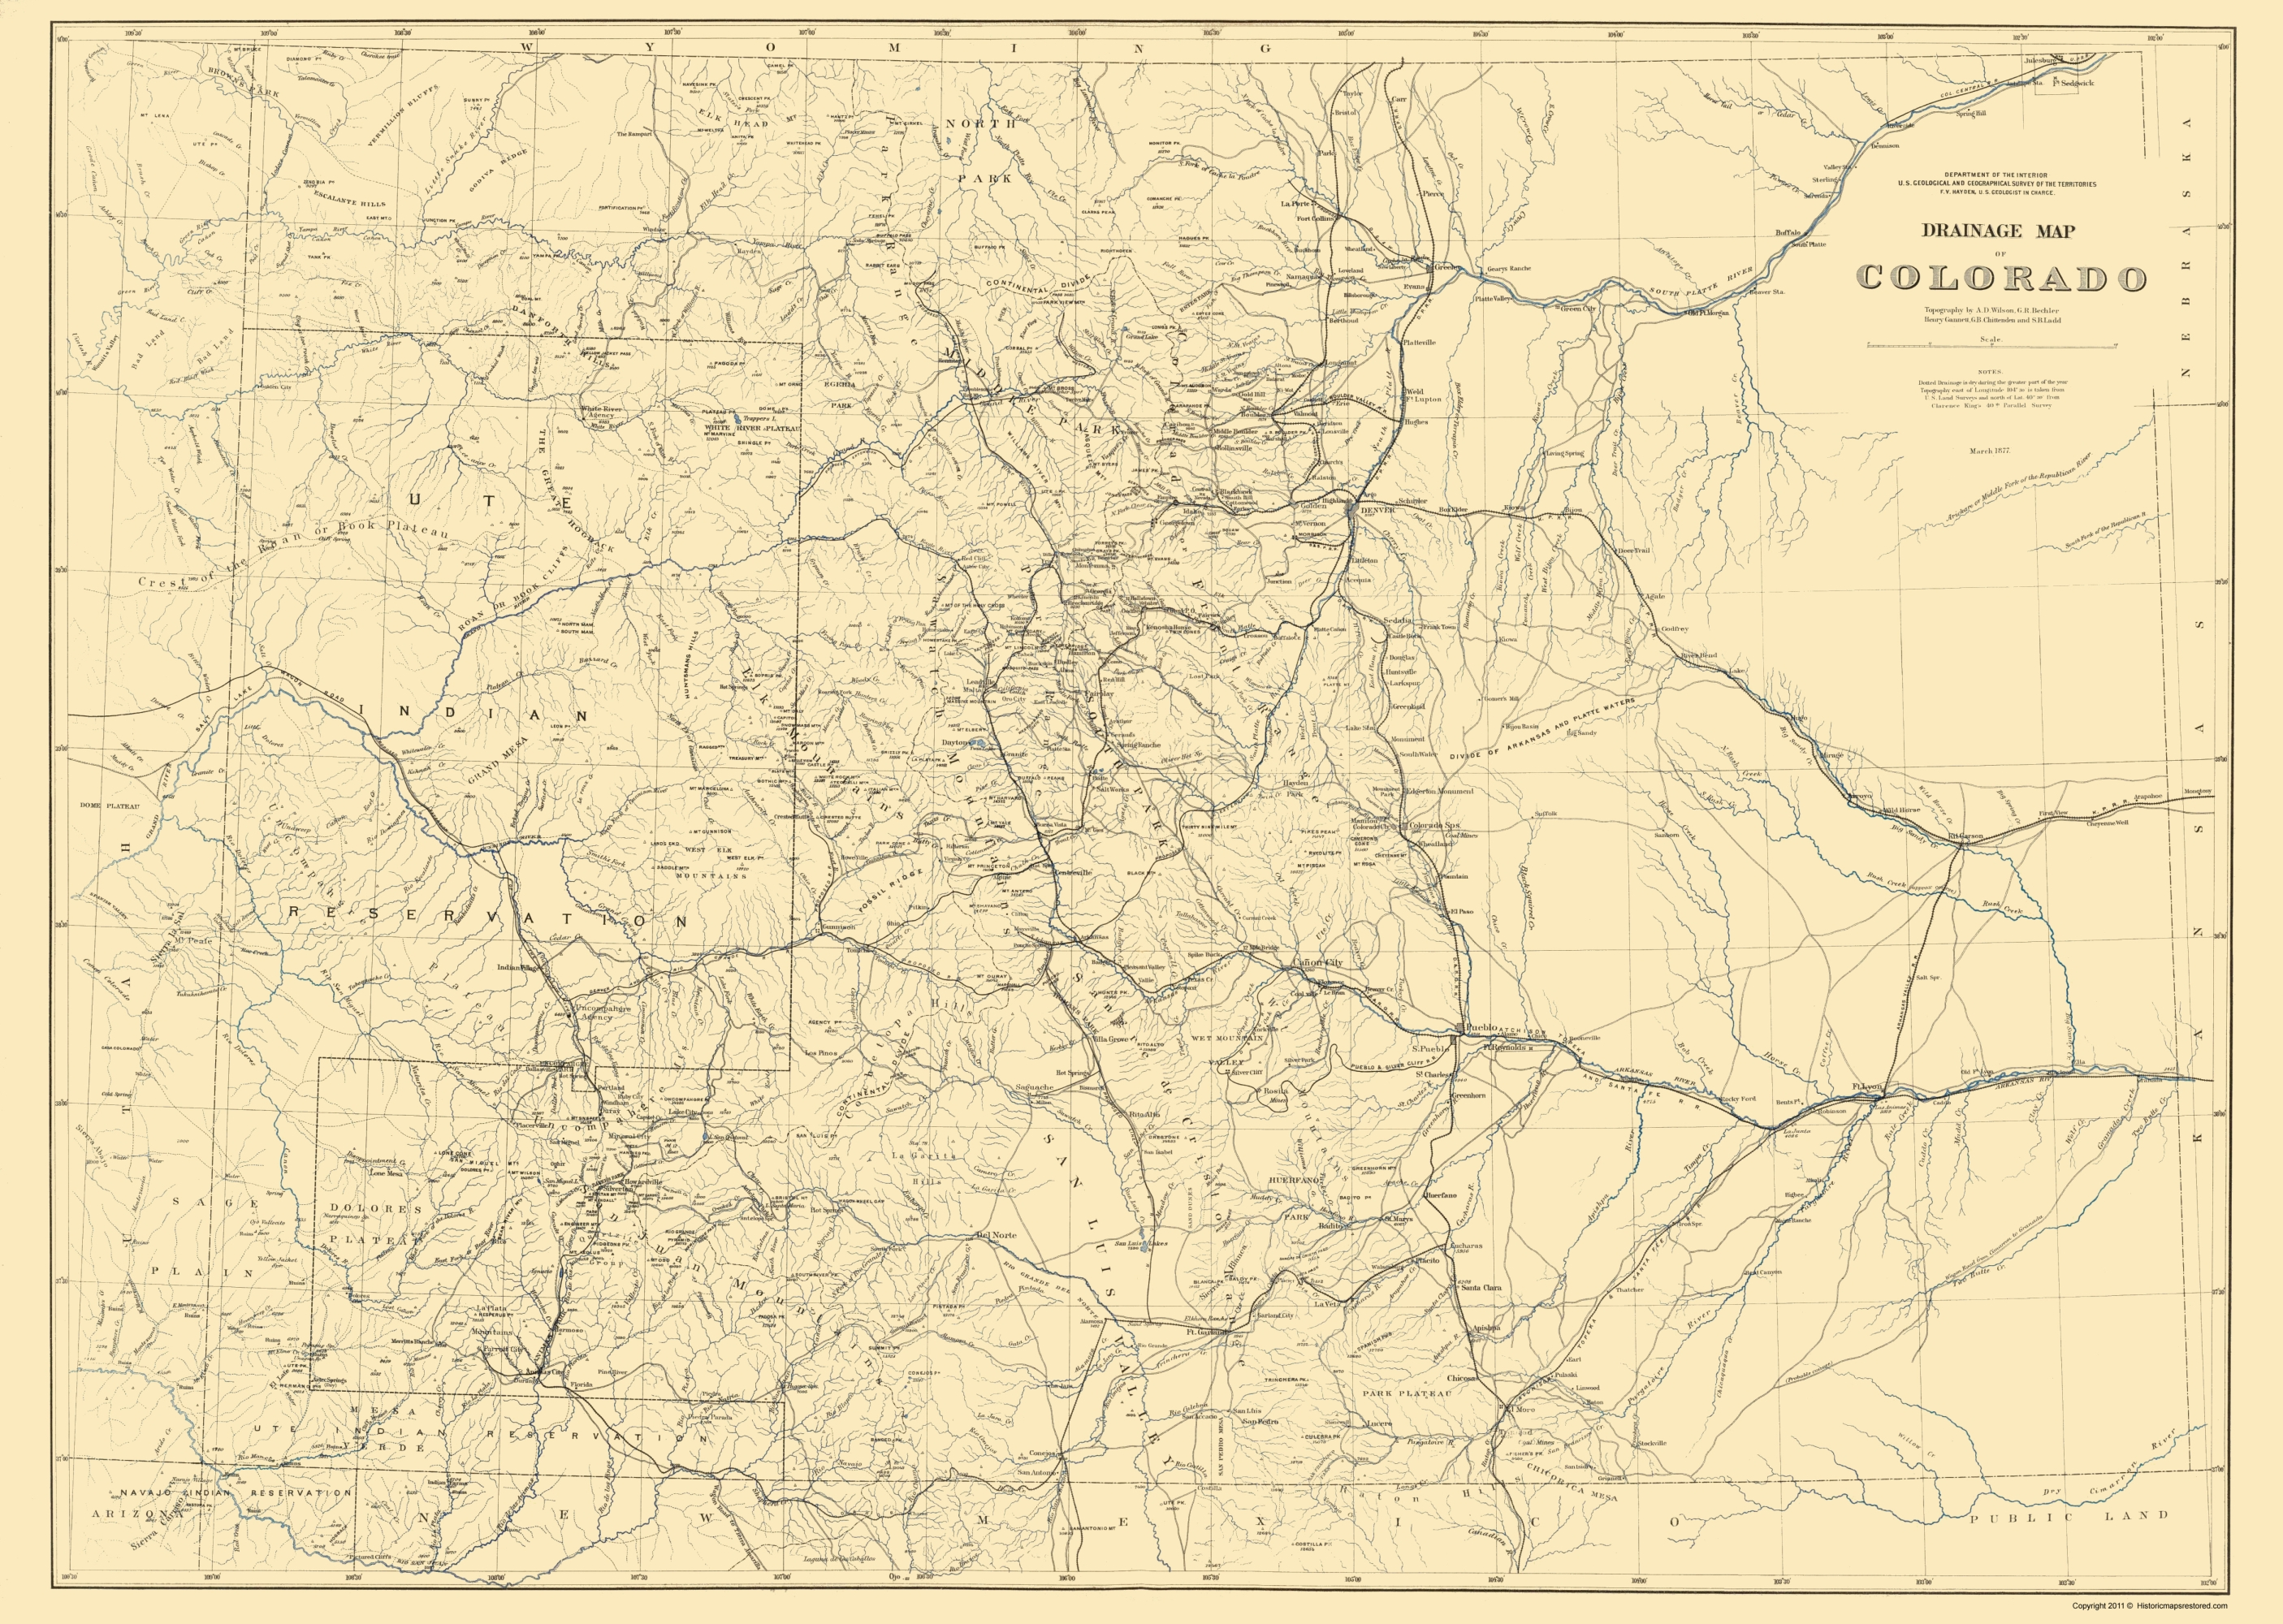 map of Colorado cities   Born In The U S A    The West   Pinterest additionally Colorado State Judicial nch   Courts   District Map additionally Colorado Road Map   CO Road Map   Colorado Highway Map moreover  in addition Printable Colorado Maps   State Outline  County  Cities furthermore Old State Map   Colorado Drainage   Hayden 1881 further Old Historical City  County and State Maps of Colorado furthermore Map of Colorado with cities and towns moreover State Map With Cities Maps Of Highway Regarding Colorado All furthermore  in addition Colorado Maps   Perry Castañeda Map Collection   UT Liry Online as well Colorado Maps   Perry Castañeda Map Collection   UT Liry Online as well Colorado Wall Map Executive  mercial Edition as well Physical Map of Colorado   Ezilon Maps in addition State Map  Colorado   The Cat's Meow Village moreover Old State Map   Colorado   Asher and Adams 1874. on state map of colorado